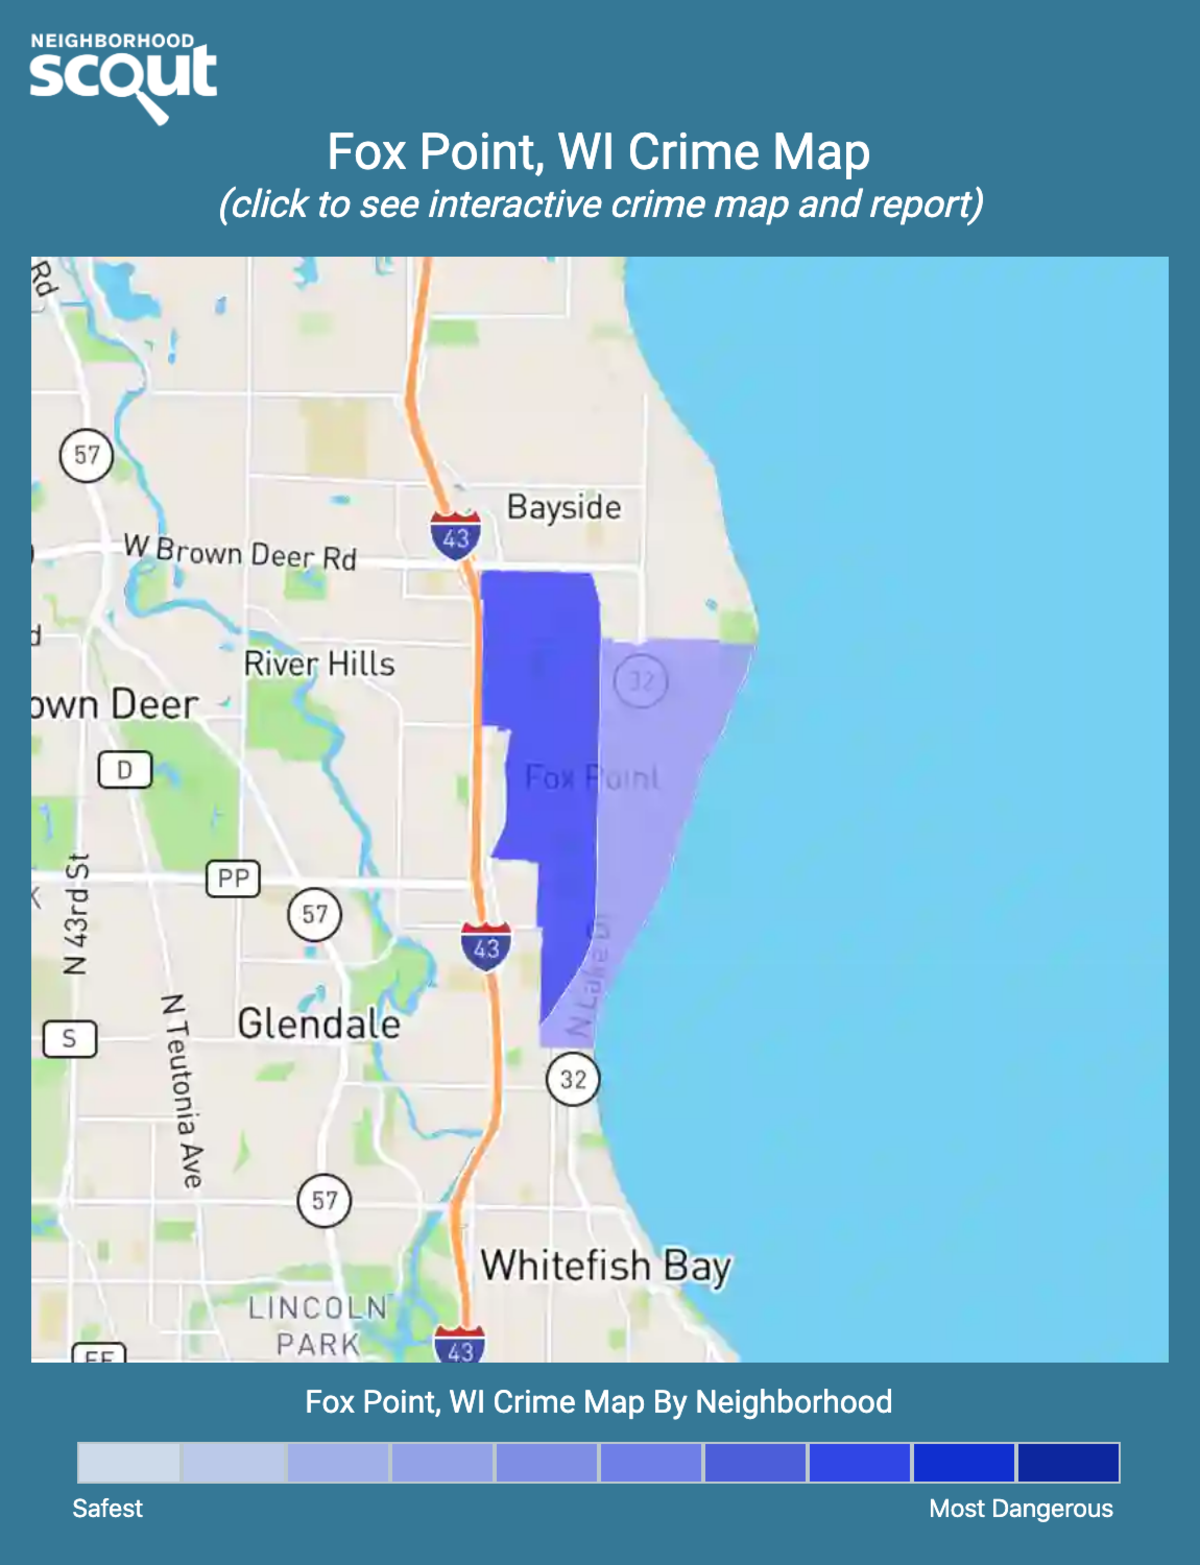 Fox Point, Wisconsin crime map